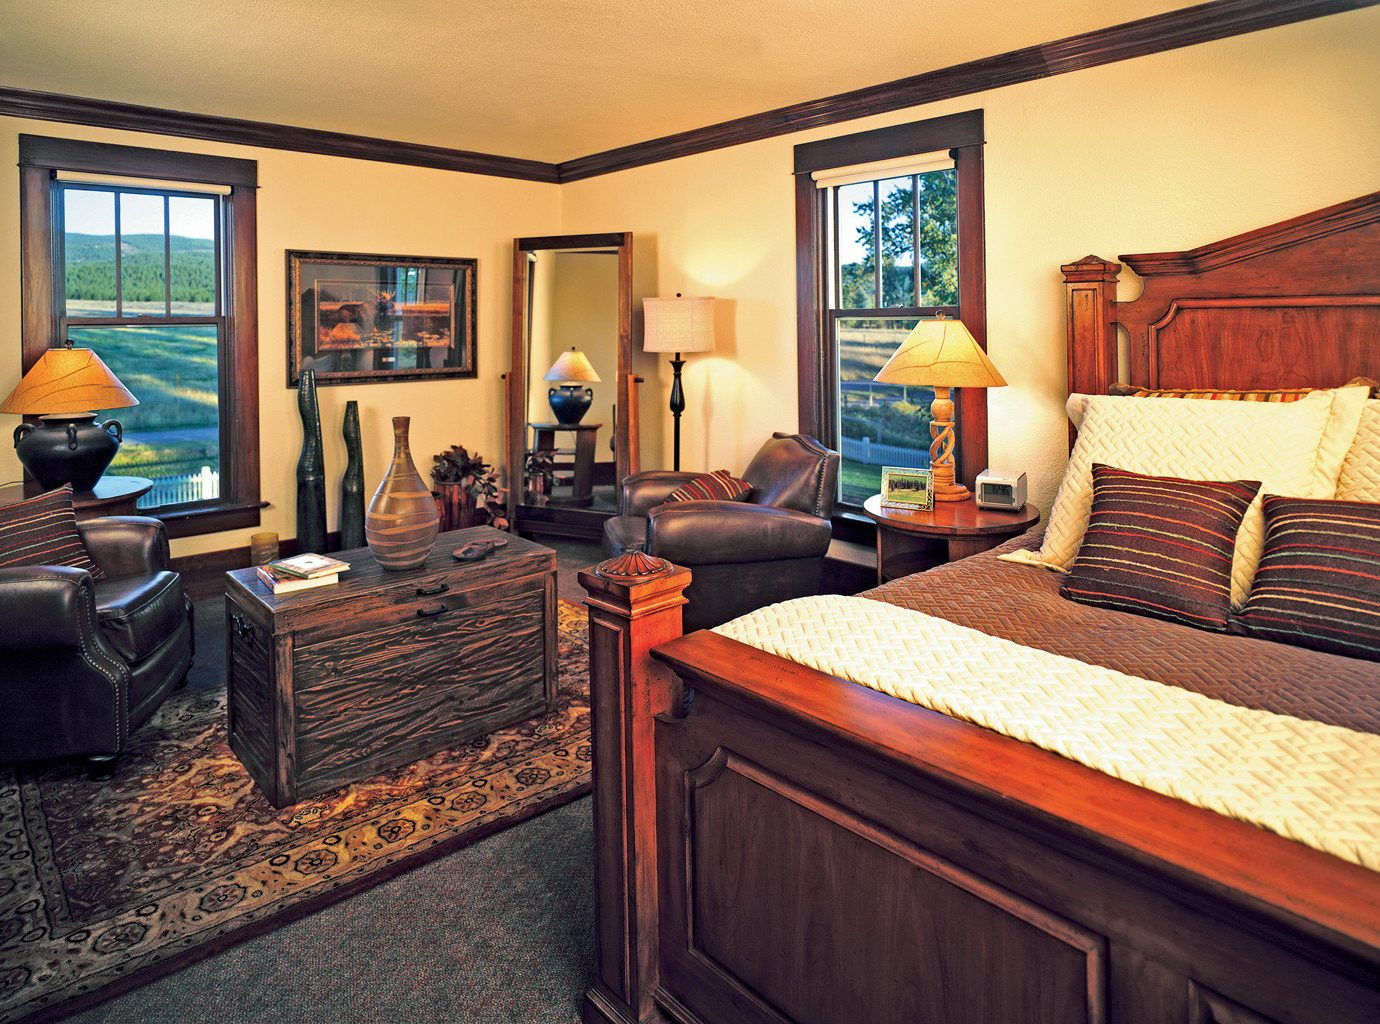 Bedroom Country Glamping Living Lodge Ranch Rustic Secret Getaways Trip Ideas Winter indoor wall floor room bed property ceiling Suite estate cottage home real estate interior design living room recreation room furniture decorated